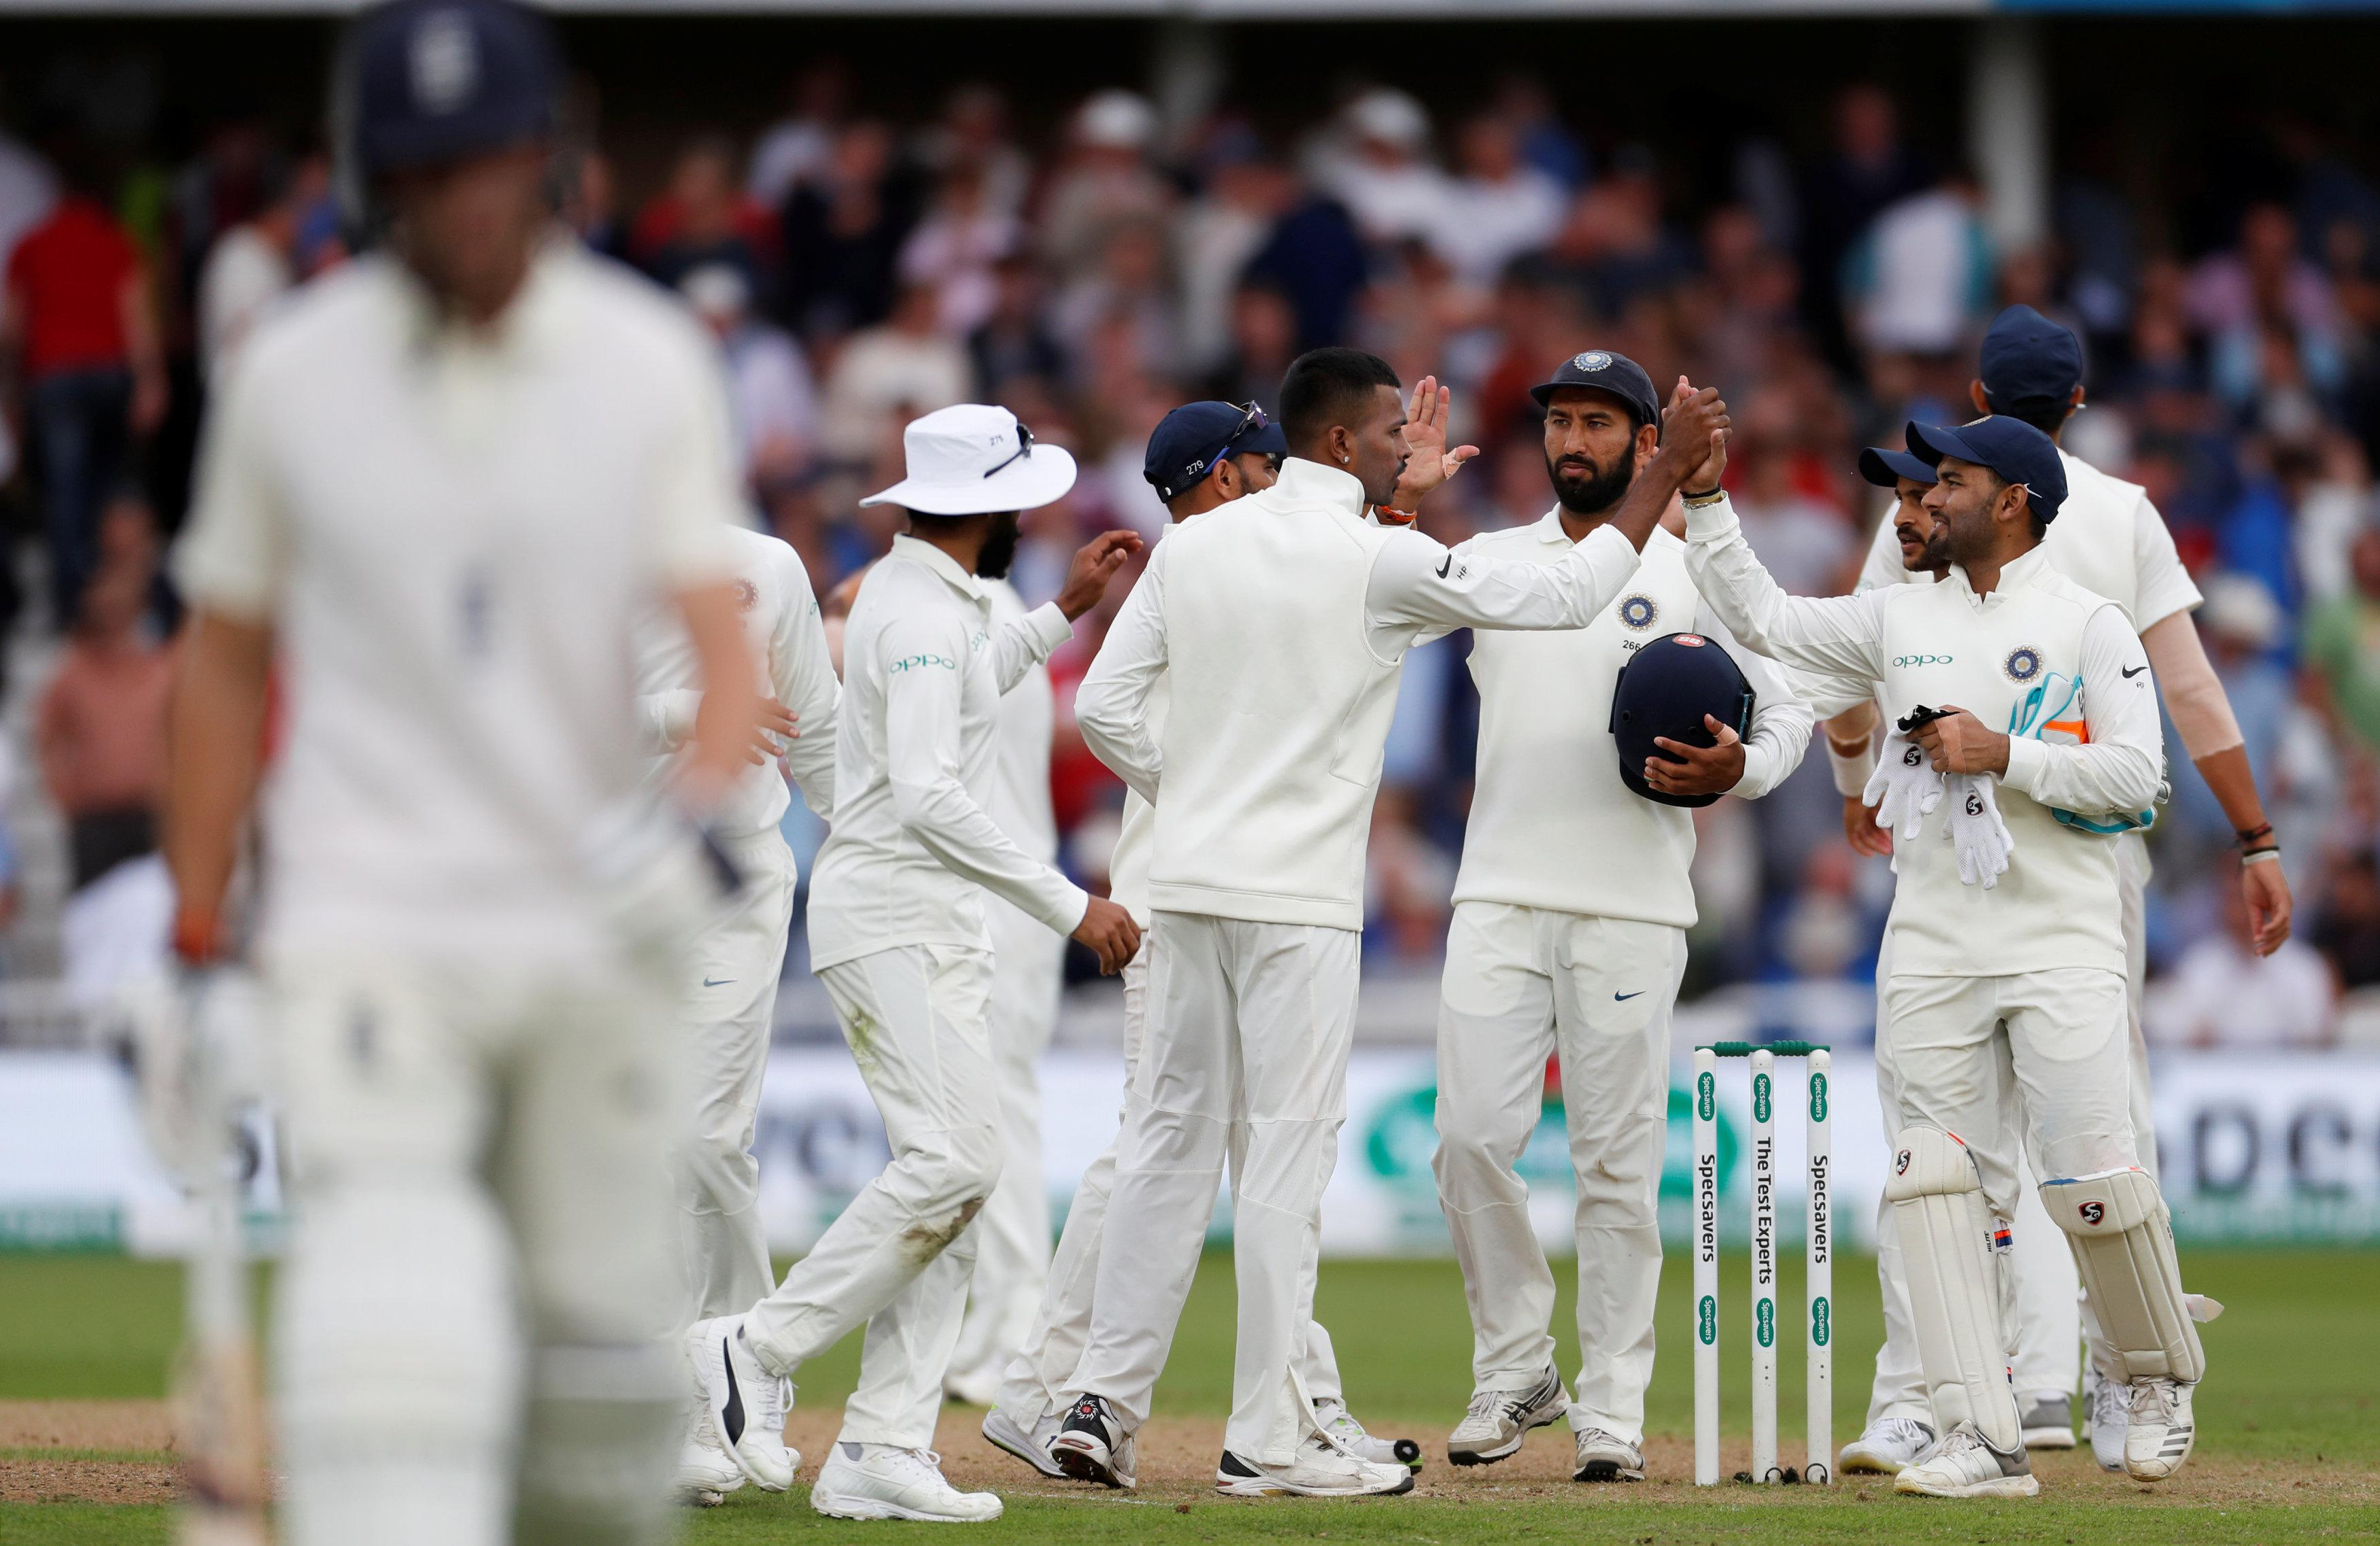 Day two was a day belonging to the bowlers